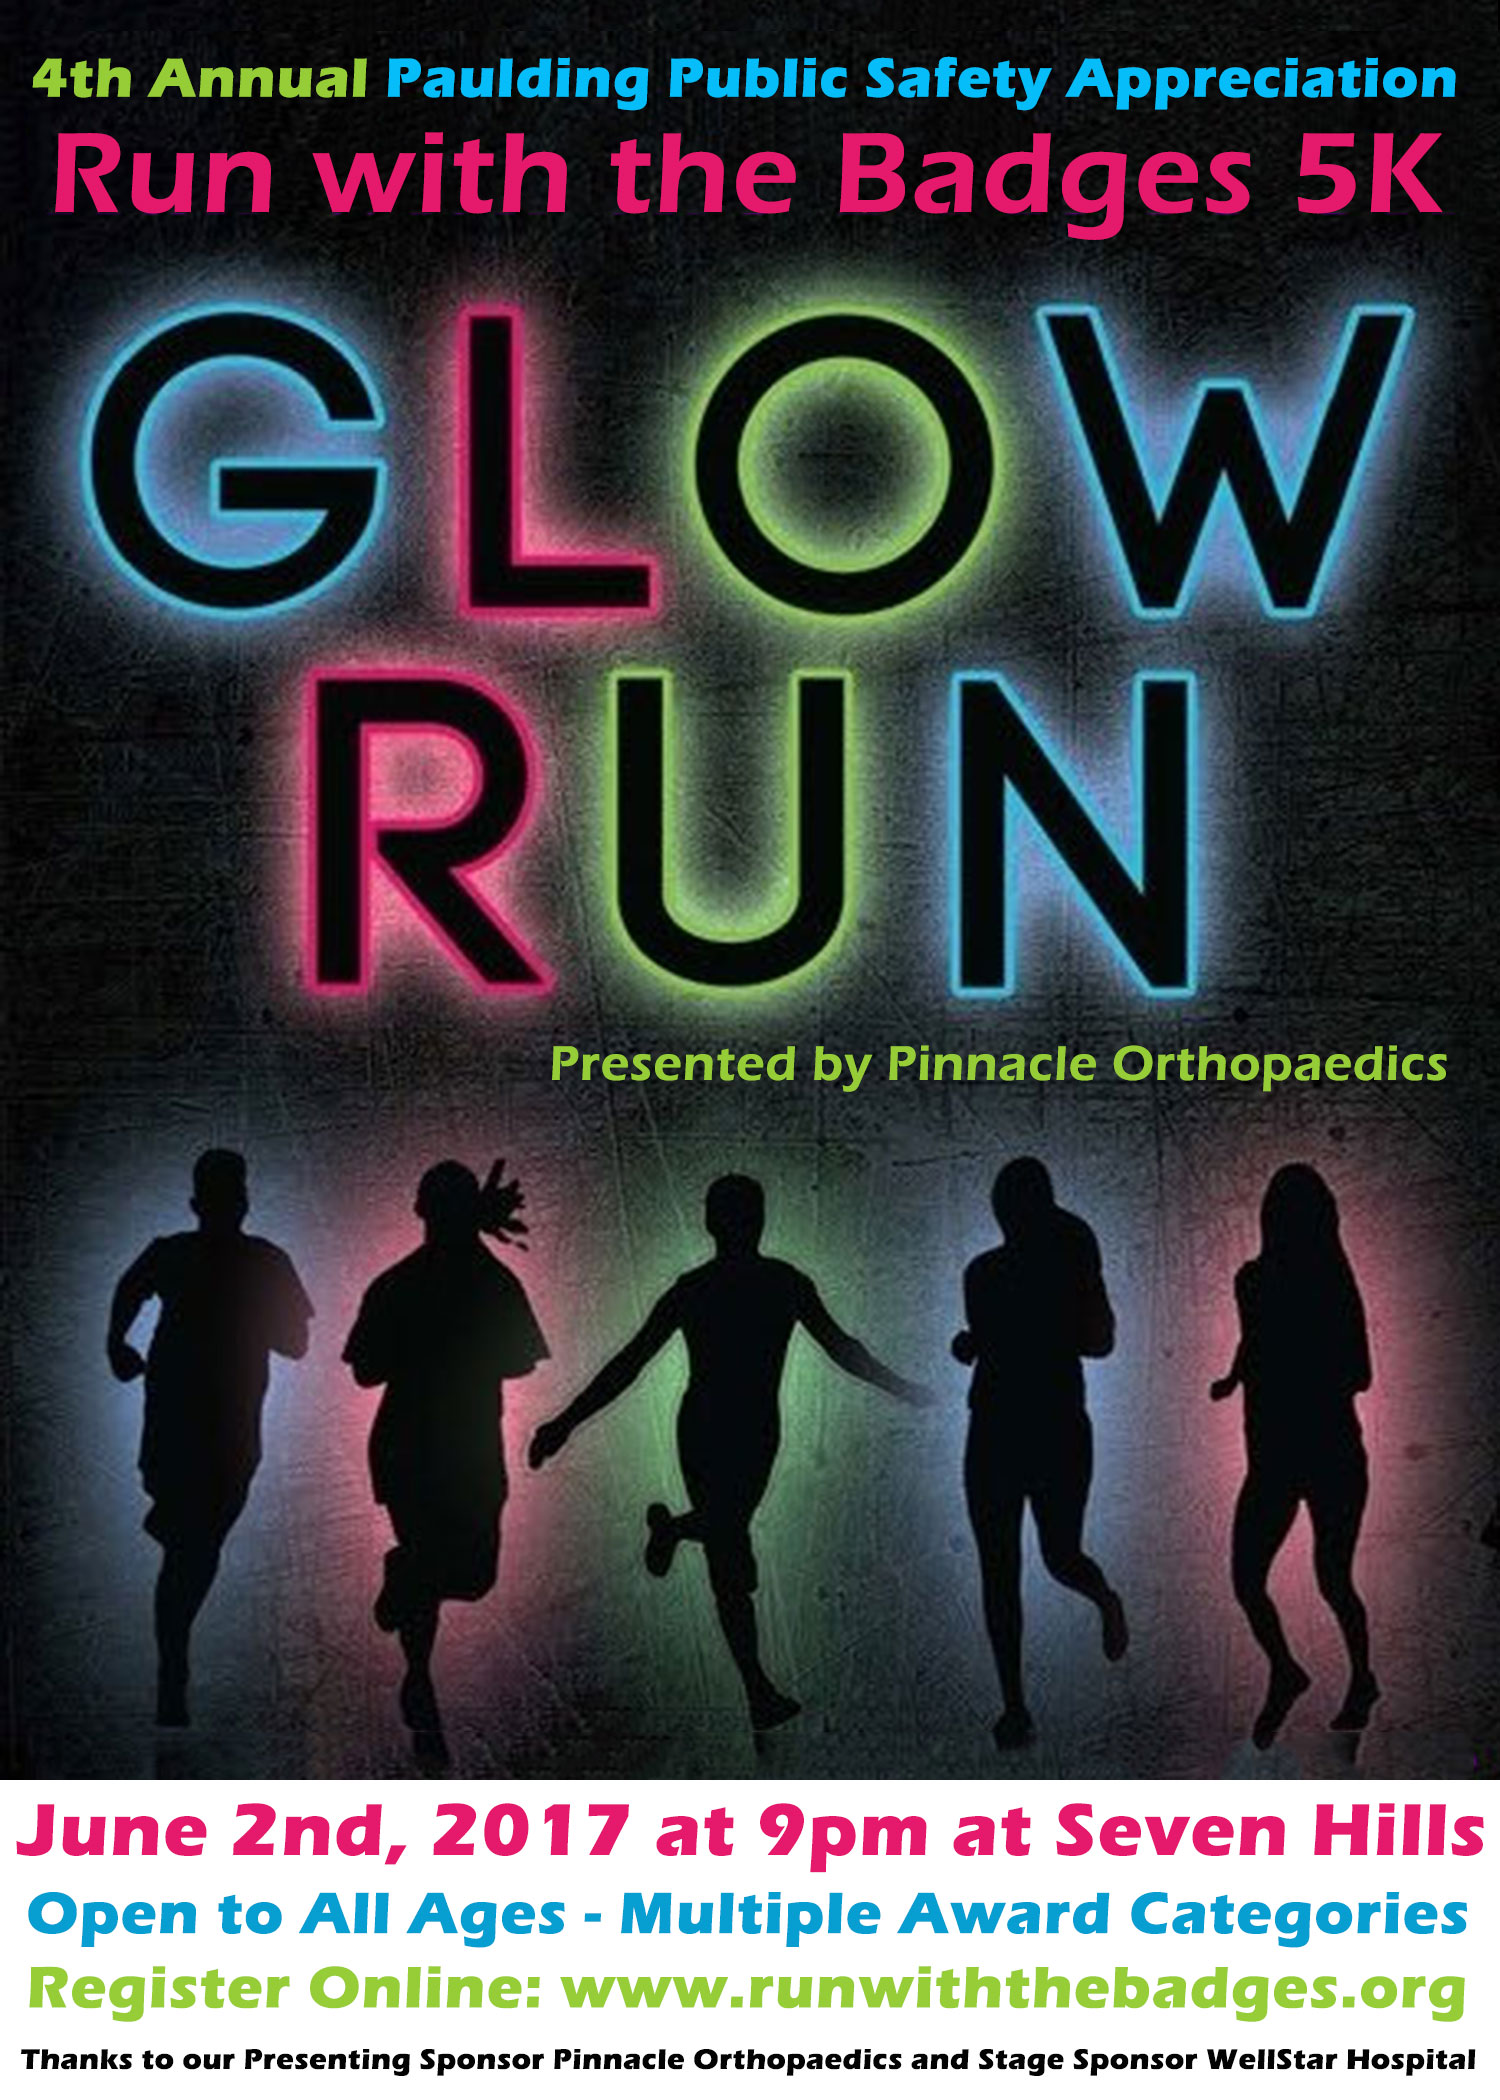 Run with the Badges 5K Glow Run